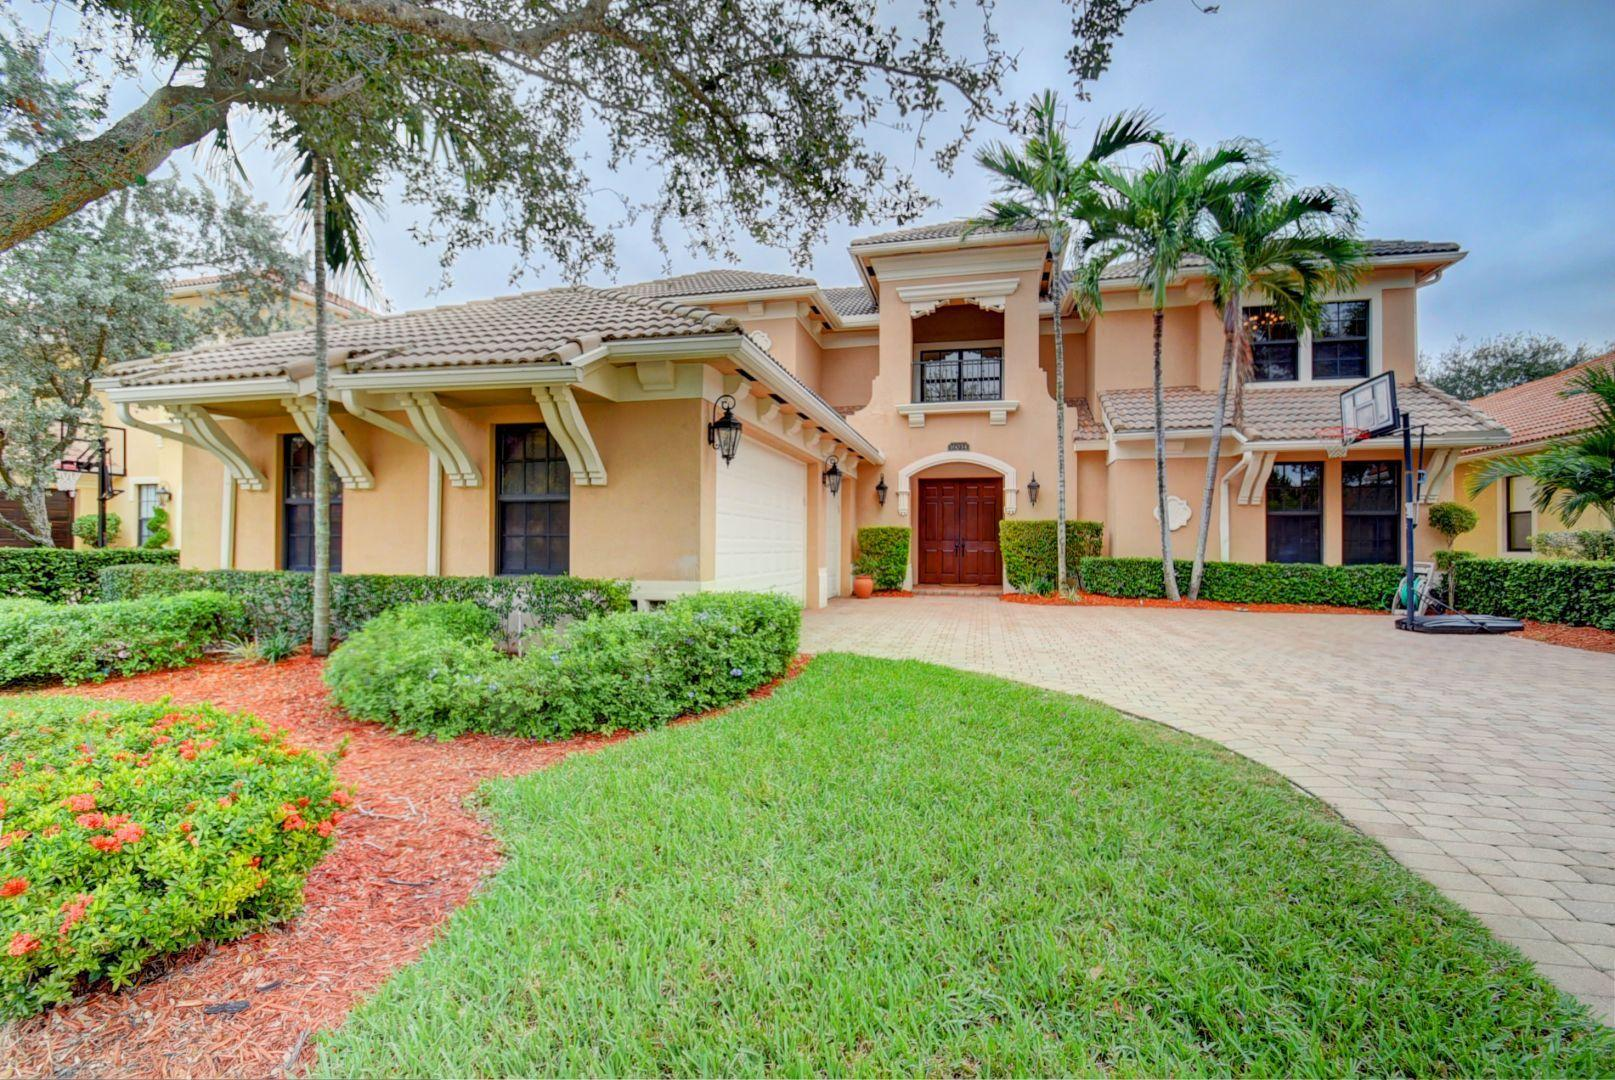 Casa Bella 16034 Rosecroft Terrace